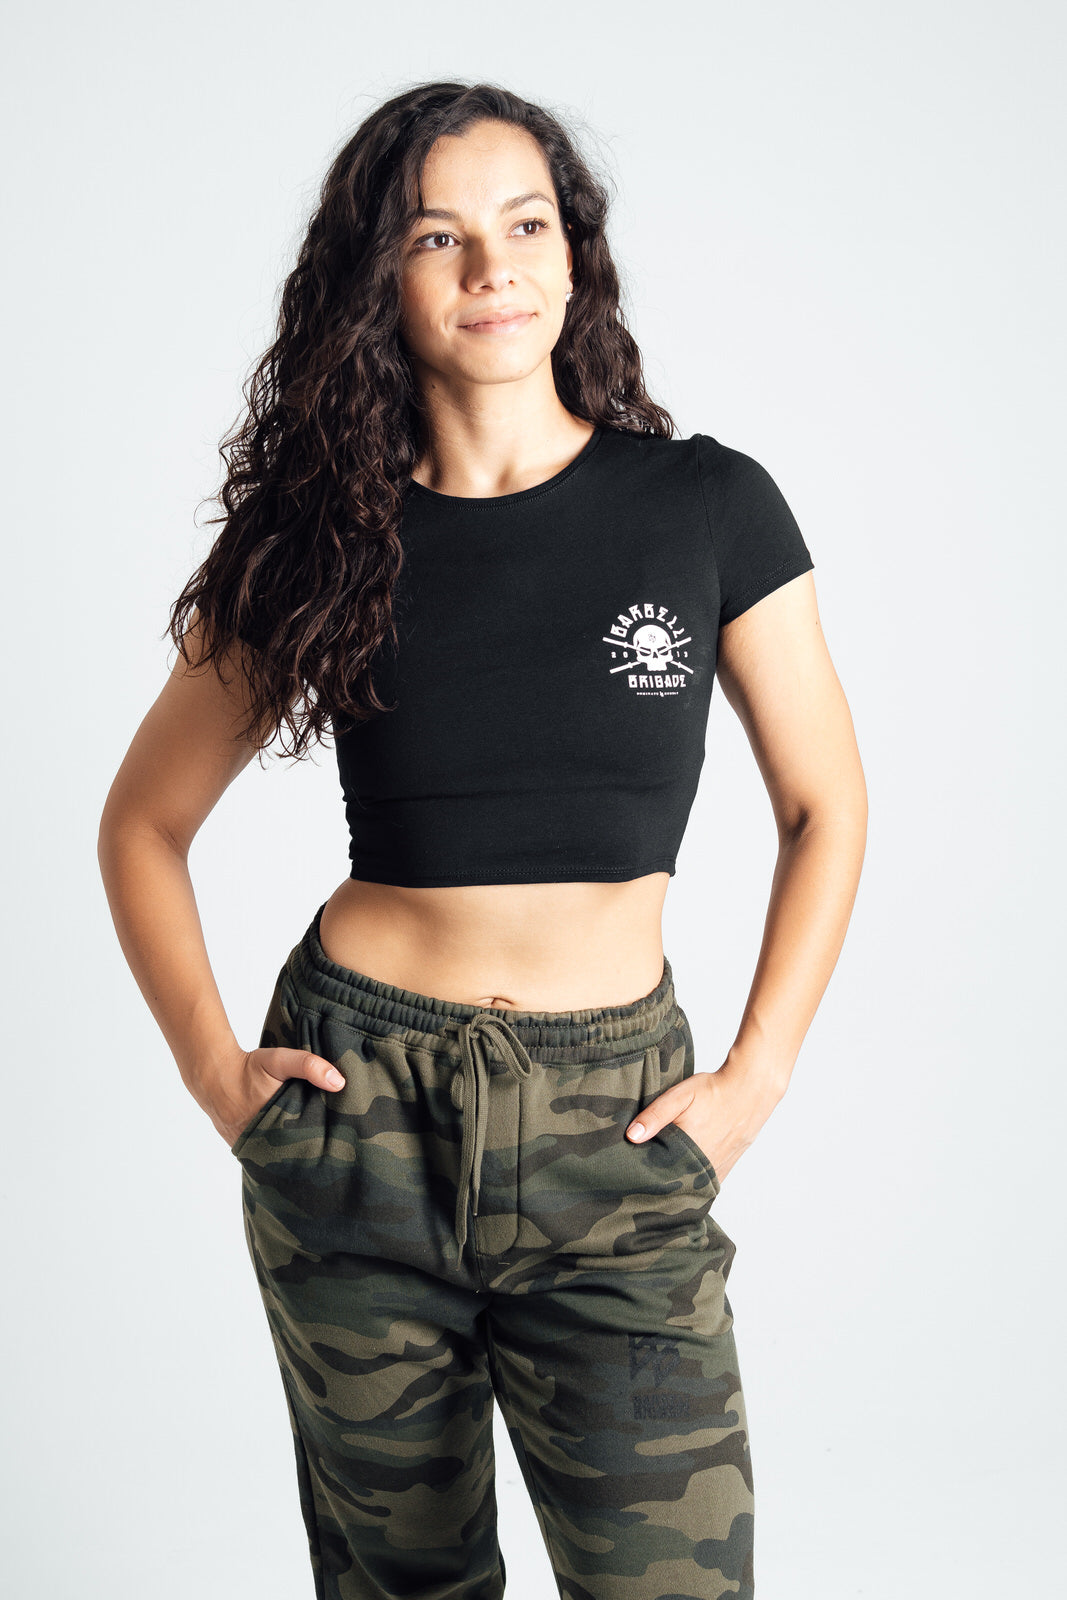 Rebirth - Women's Cropped Tee (Black)